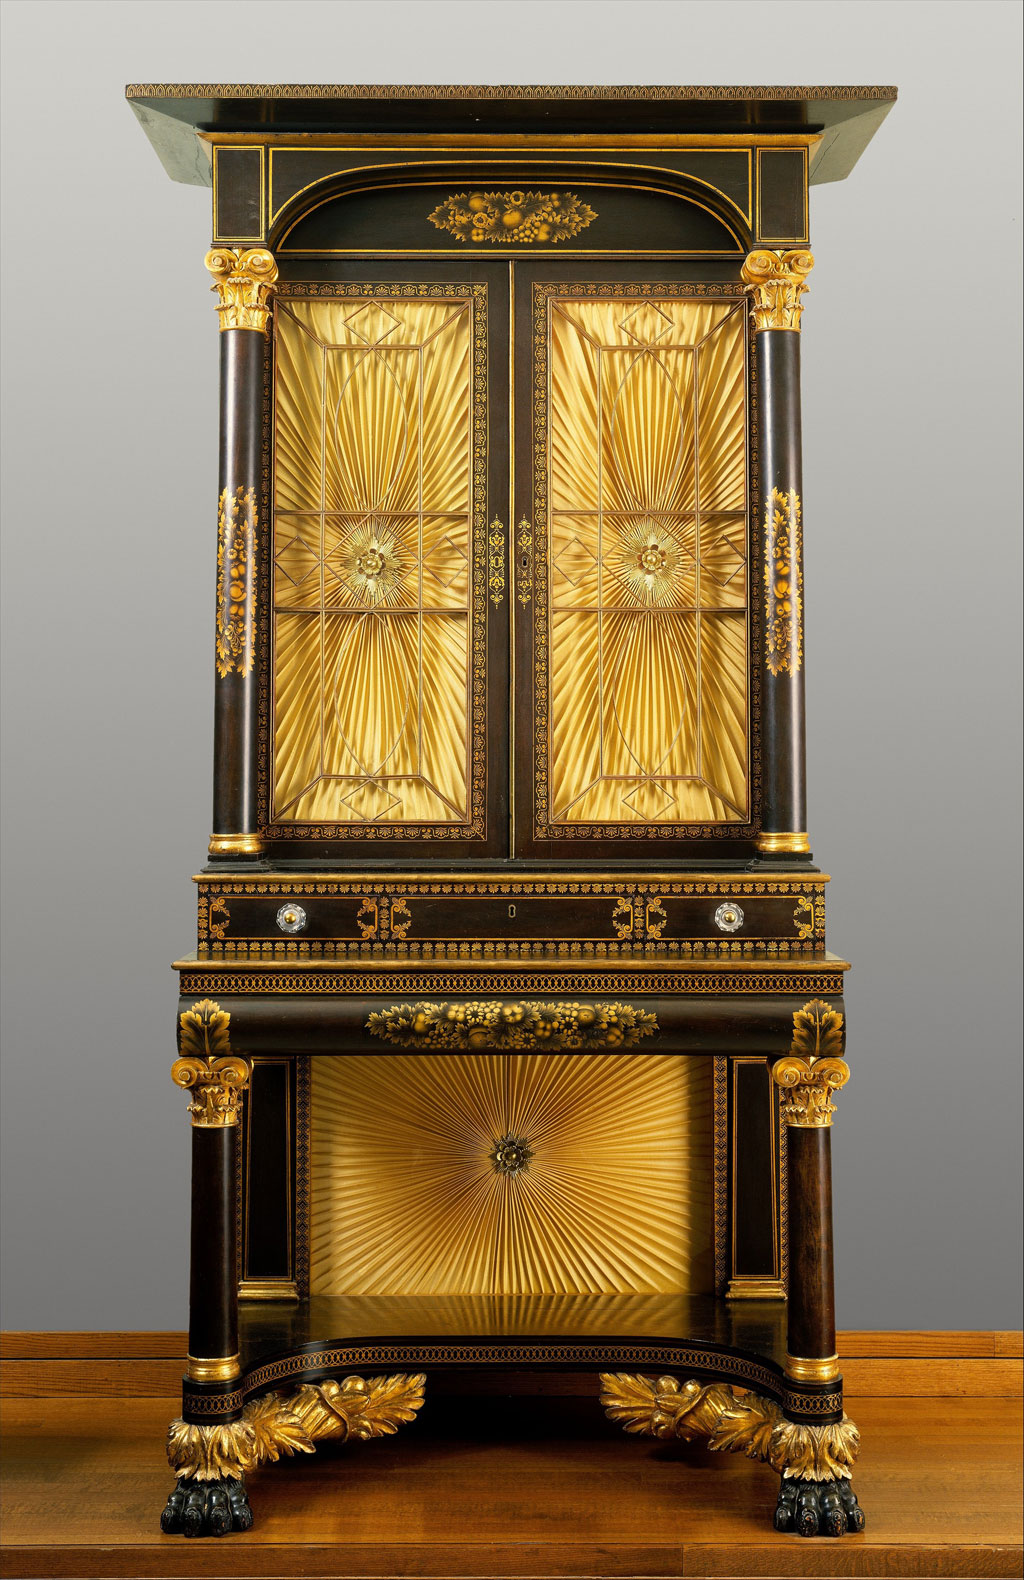 highlights from the met's collection (7)